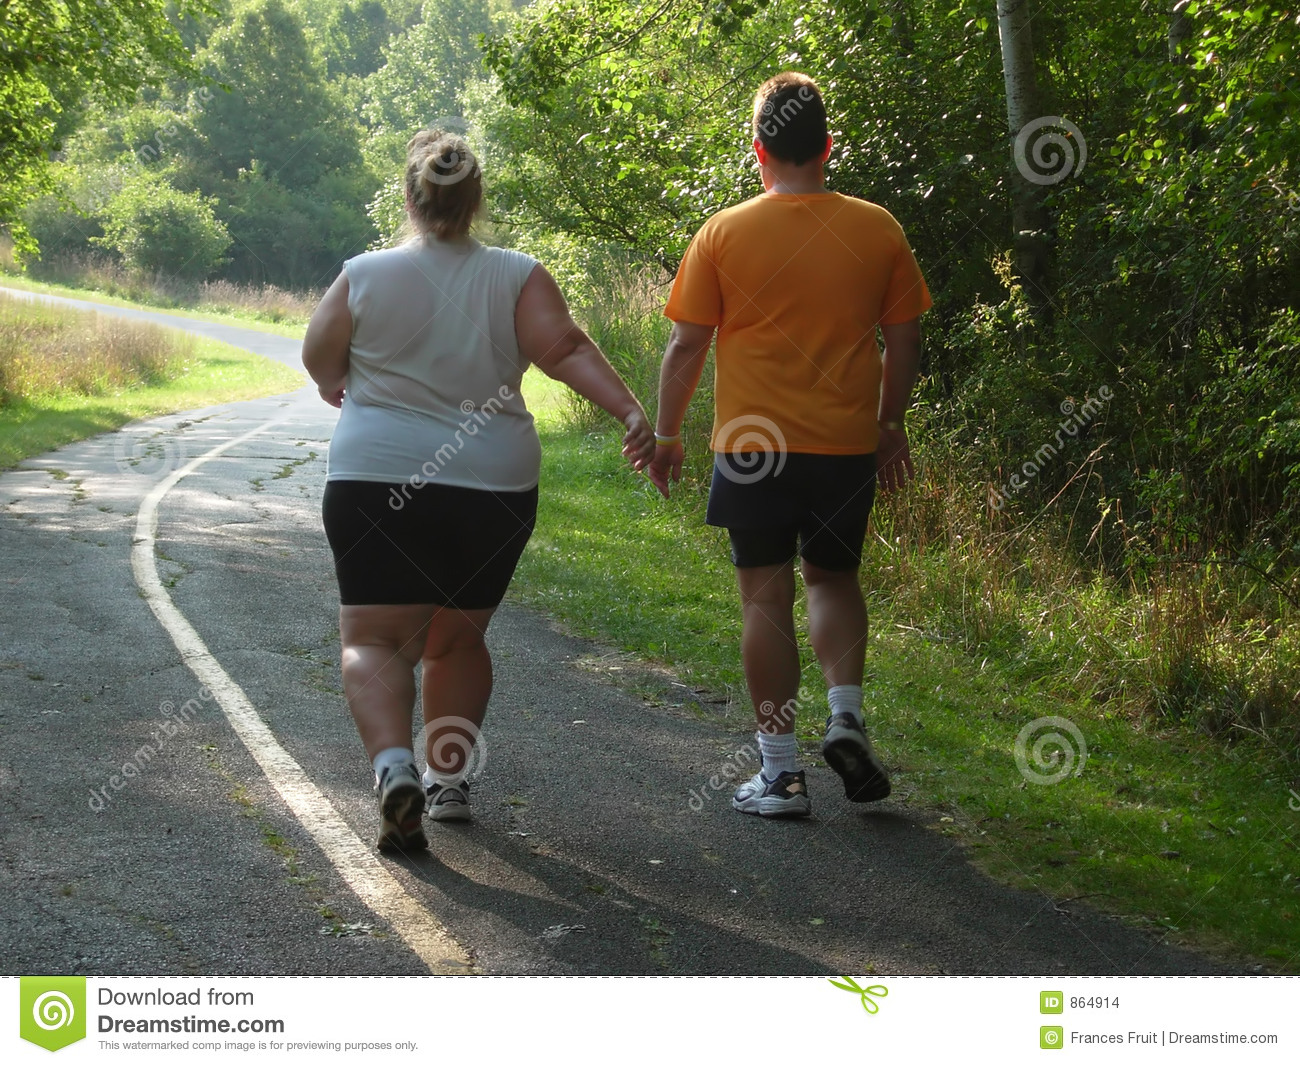 Large people walking on trail